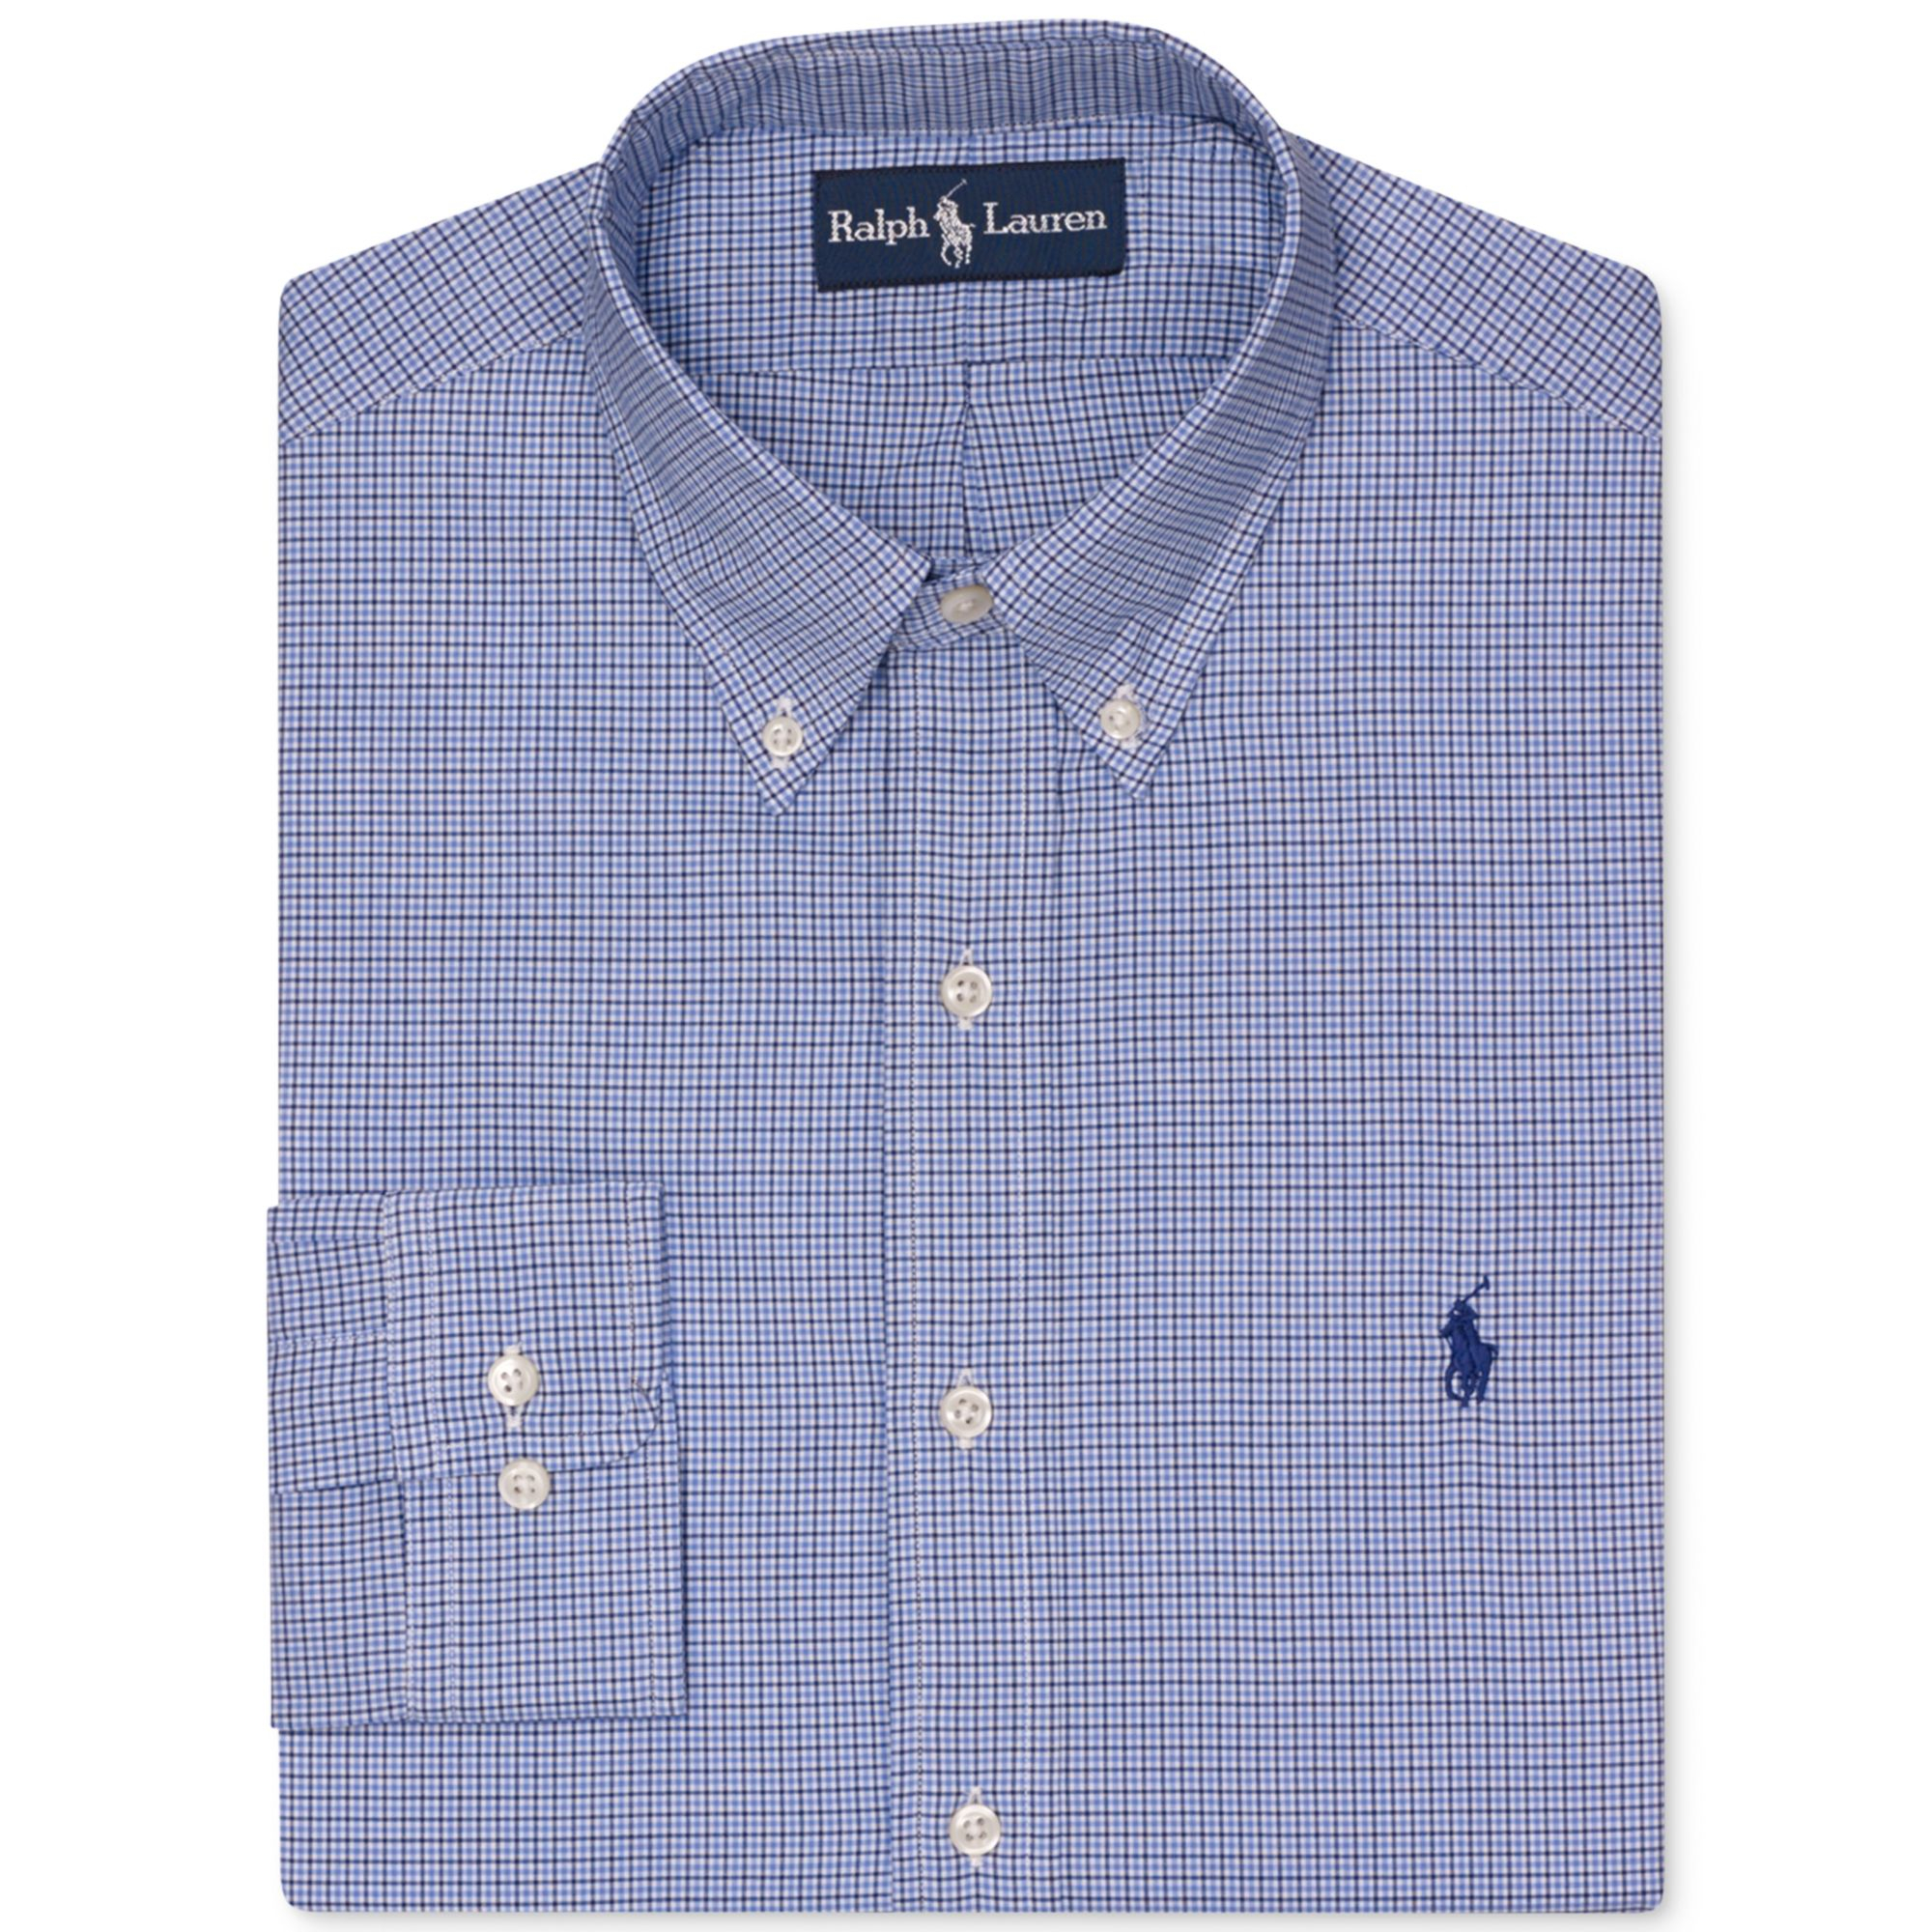 Ralph lauren polo slim fit blue check dress shirt in blue for Blue check dress shirt